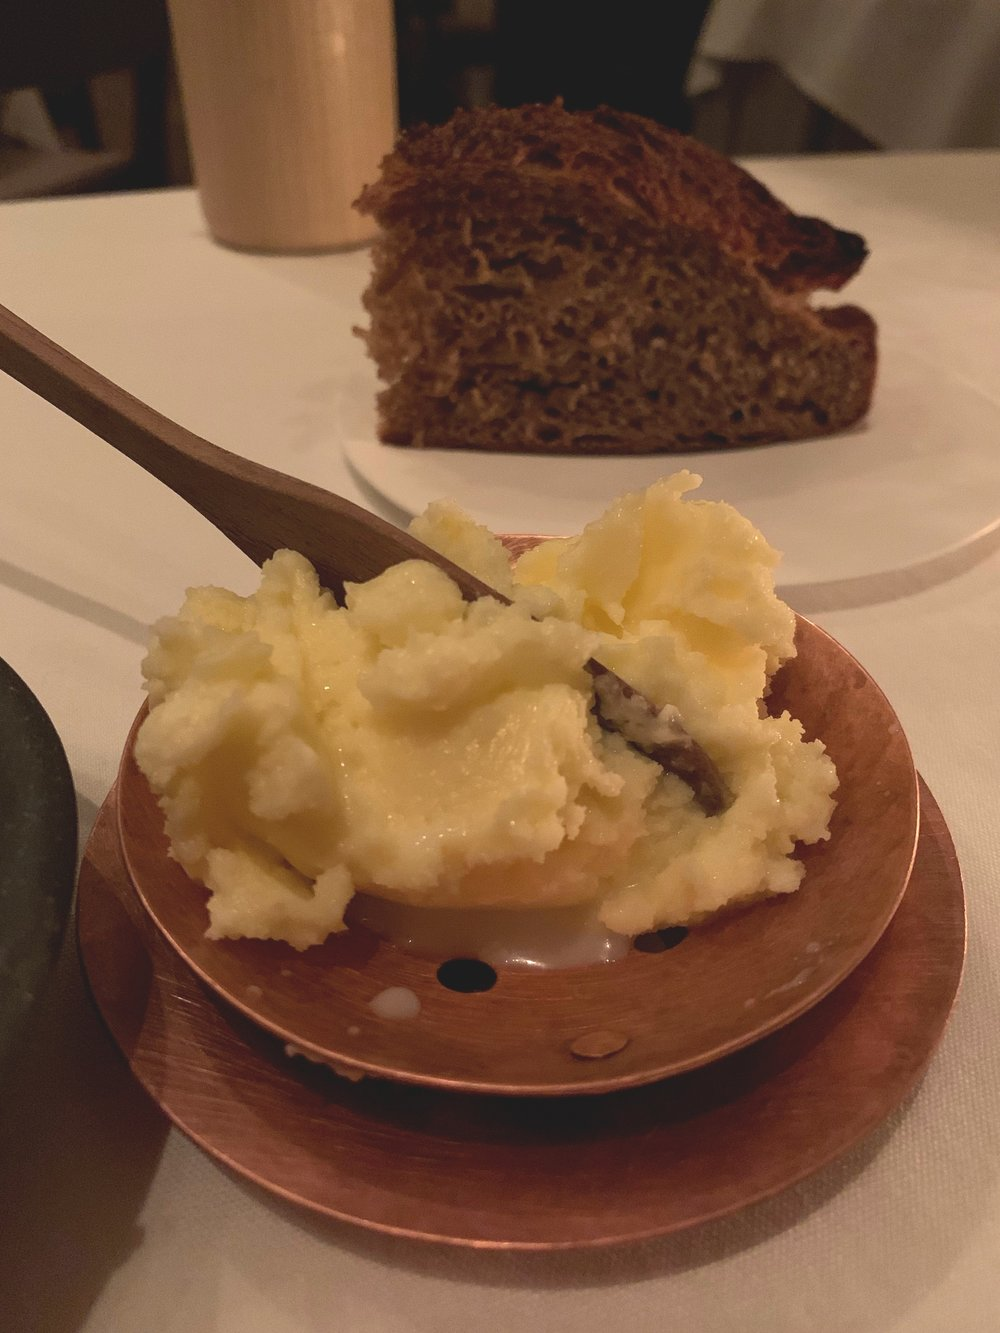 Bread and Butter - Our server brought the bread and butter to the table, finished churning the butter, and then plopped it onto the plate with a healthy pour of buttermilk, and said, go at it, young people. Go at it, we did. Is there anything better than freshly churned butter from Blue Hill? I don't know if there is. Combine that with the Barber Wheat and you've got a great bread course. At this point in the meal, we are so full we could barely eat another bite, but we eventually finished it all because we aren't quitters. Especially not when it comes to bread.